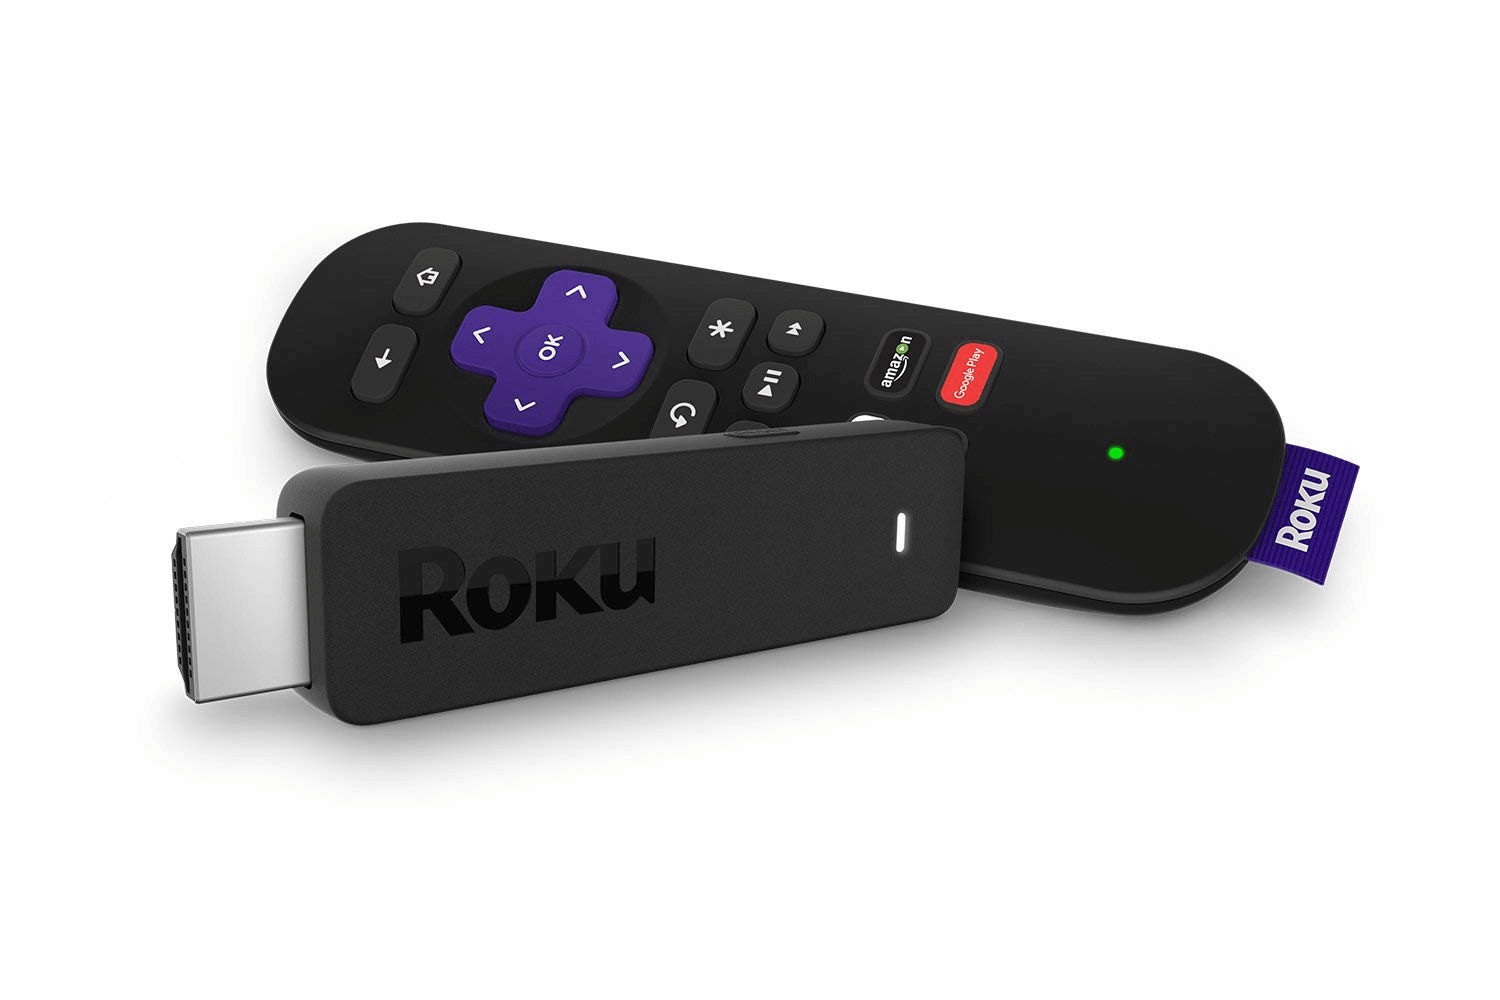 Roku Streaming Stick + - Chromecast Alternative App